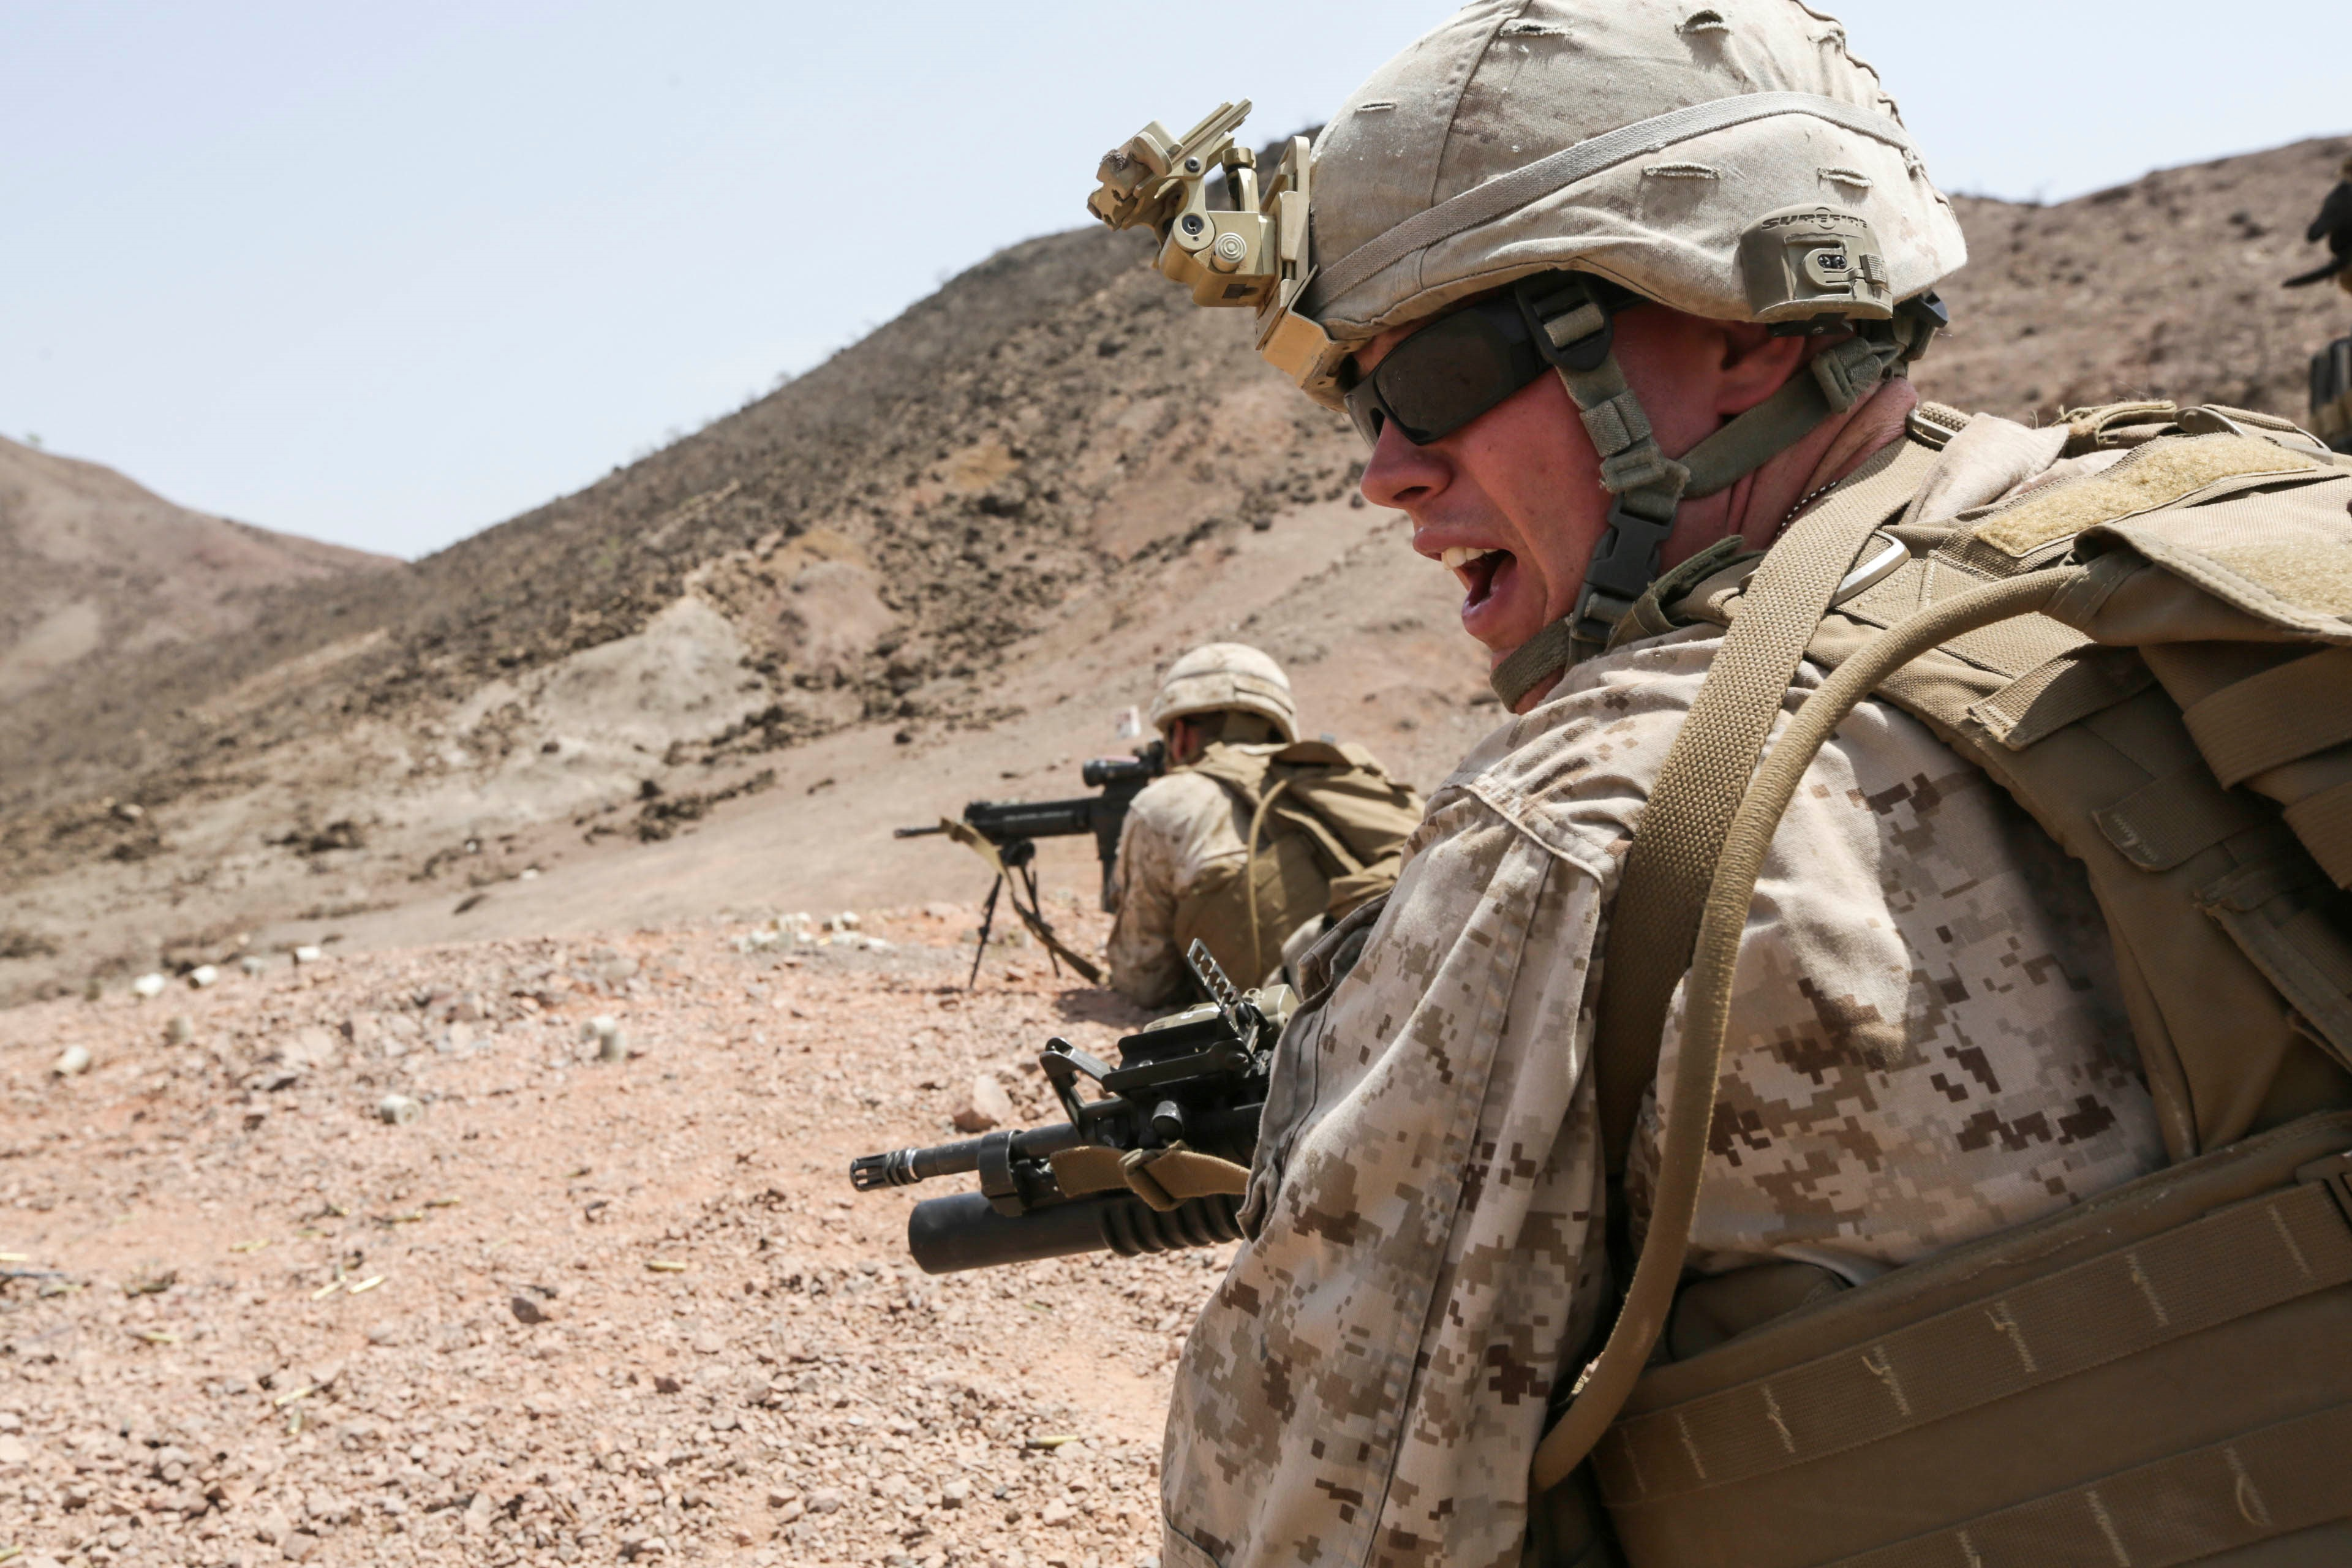 ARTA BEACH, Djibouti (July 22, 2015) A U.S. Marine team leader with Battalion Landing Team 3rd Battalion, 1st Marine Regiment, 15th Marine Expeditionary Unit, yells commands to his squad during a squad-attack exercise.  The Marines of BLT 3/1 executed a series of attack and maneuver drills consisting of, machine gun, squad and night attacks.  Elements of the 15th Marine Expeditionary Unit are ashore in Djibouti for sustainment training to maintain and enhance the skills they developed during their pre-deployment training period.  The 15th MEU is currently deployed in support of maritime security operations and theater security cooperation efforts in the U.S. 5th and 6th Fleet areas of operation. (U.S. Marine Corps photo by Sgt. Jamean Berry/Released)